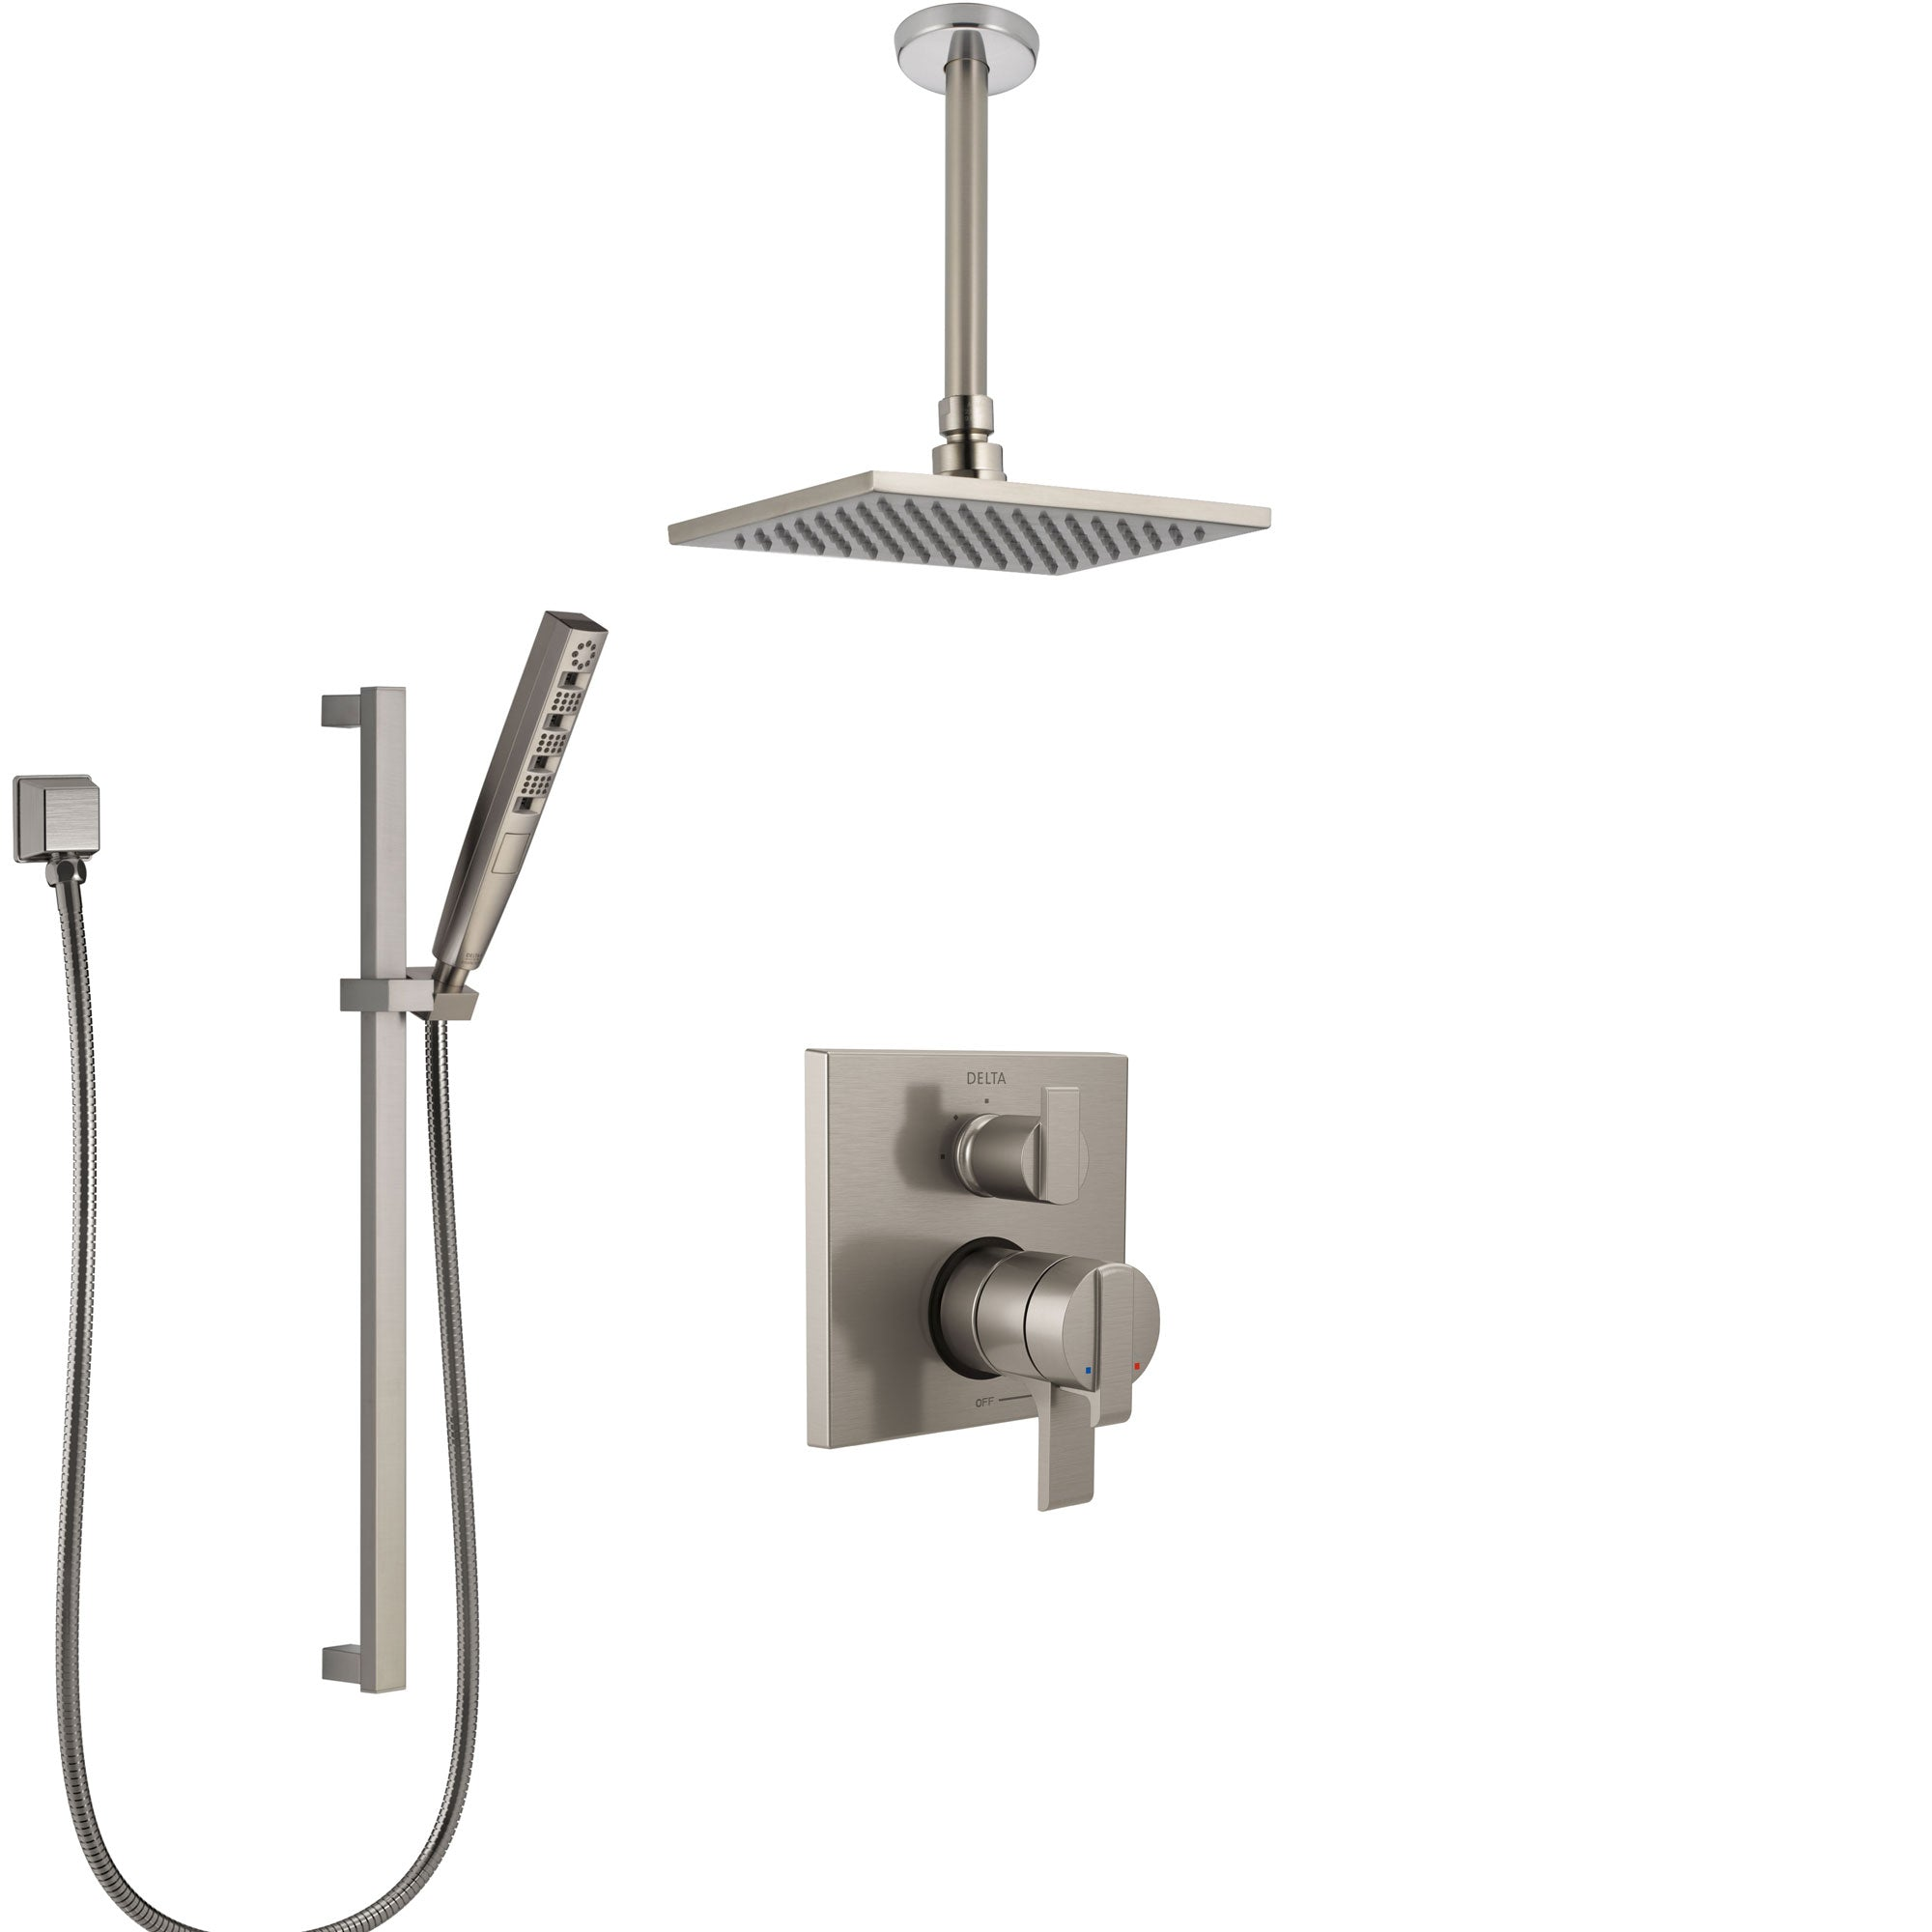 Delta Ara Dual Control Handle Stainless Steel Finish Shower System, Integrated Diverter, Ceiling Mount Showerhead, and Hand Shower SS27867SS7